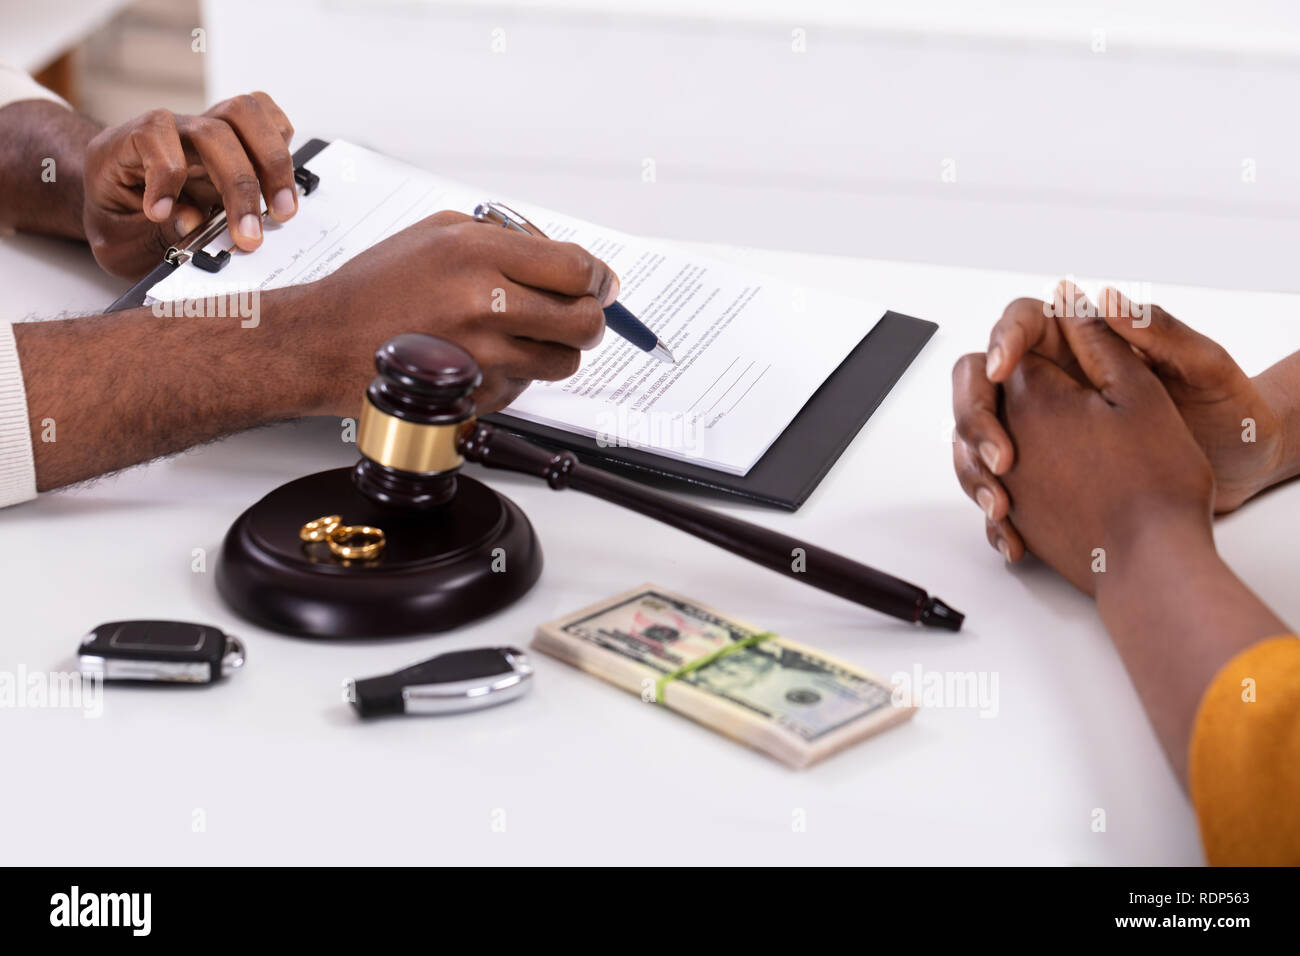 Judge Explaining Document To His Client With Golden Rings And Banknotes On Desk - Stock Image